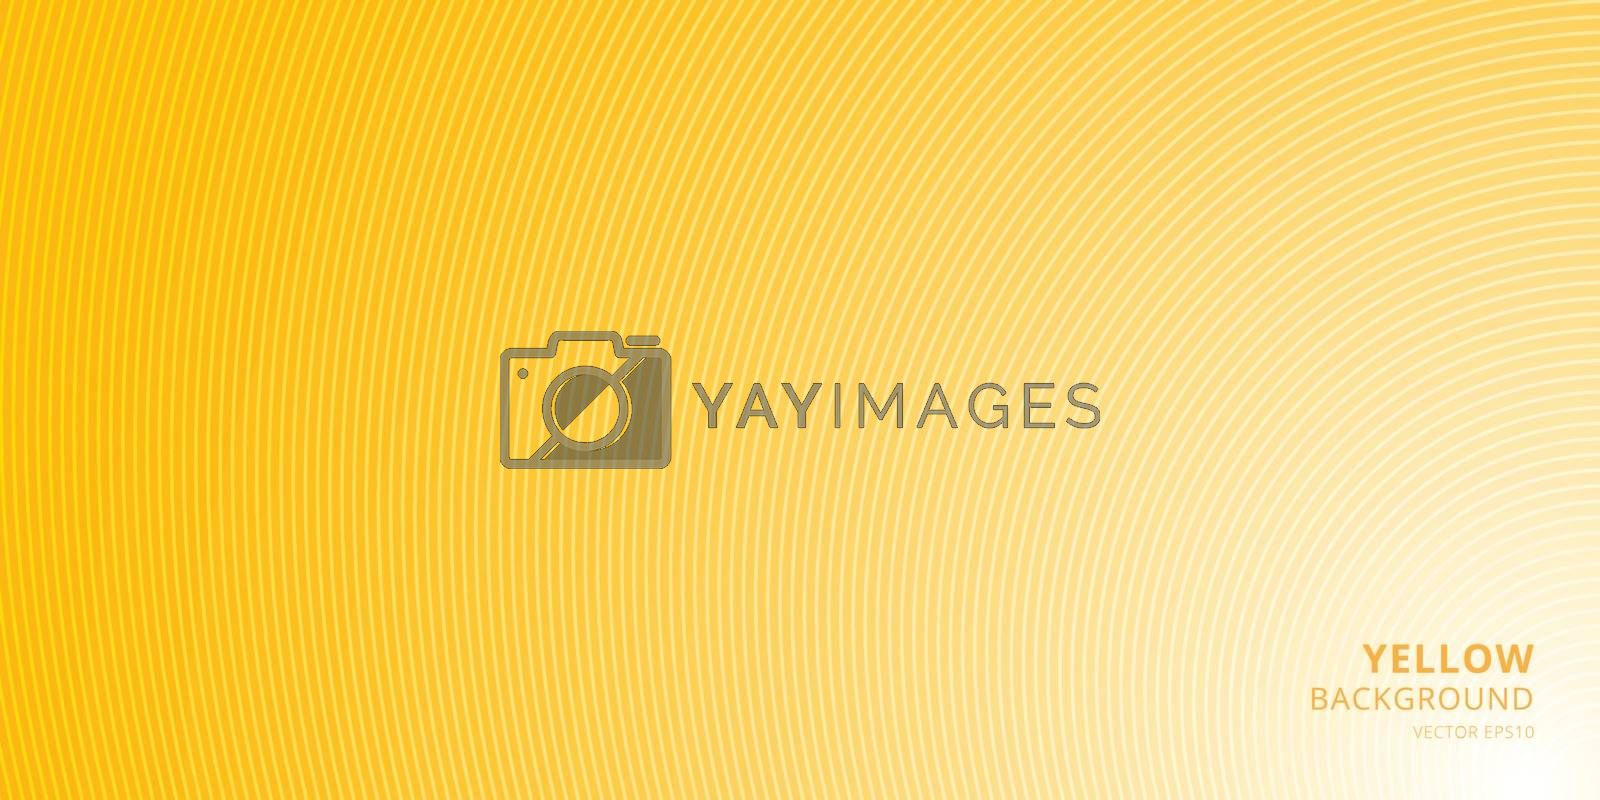 Smooth light yellow background with curved lines pattern texture with place for text. You can use cover brochure, card, banner web, poster, print, etc. Vector illustration